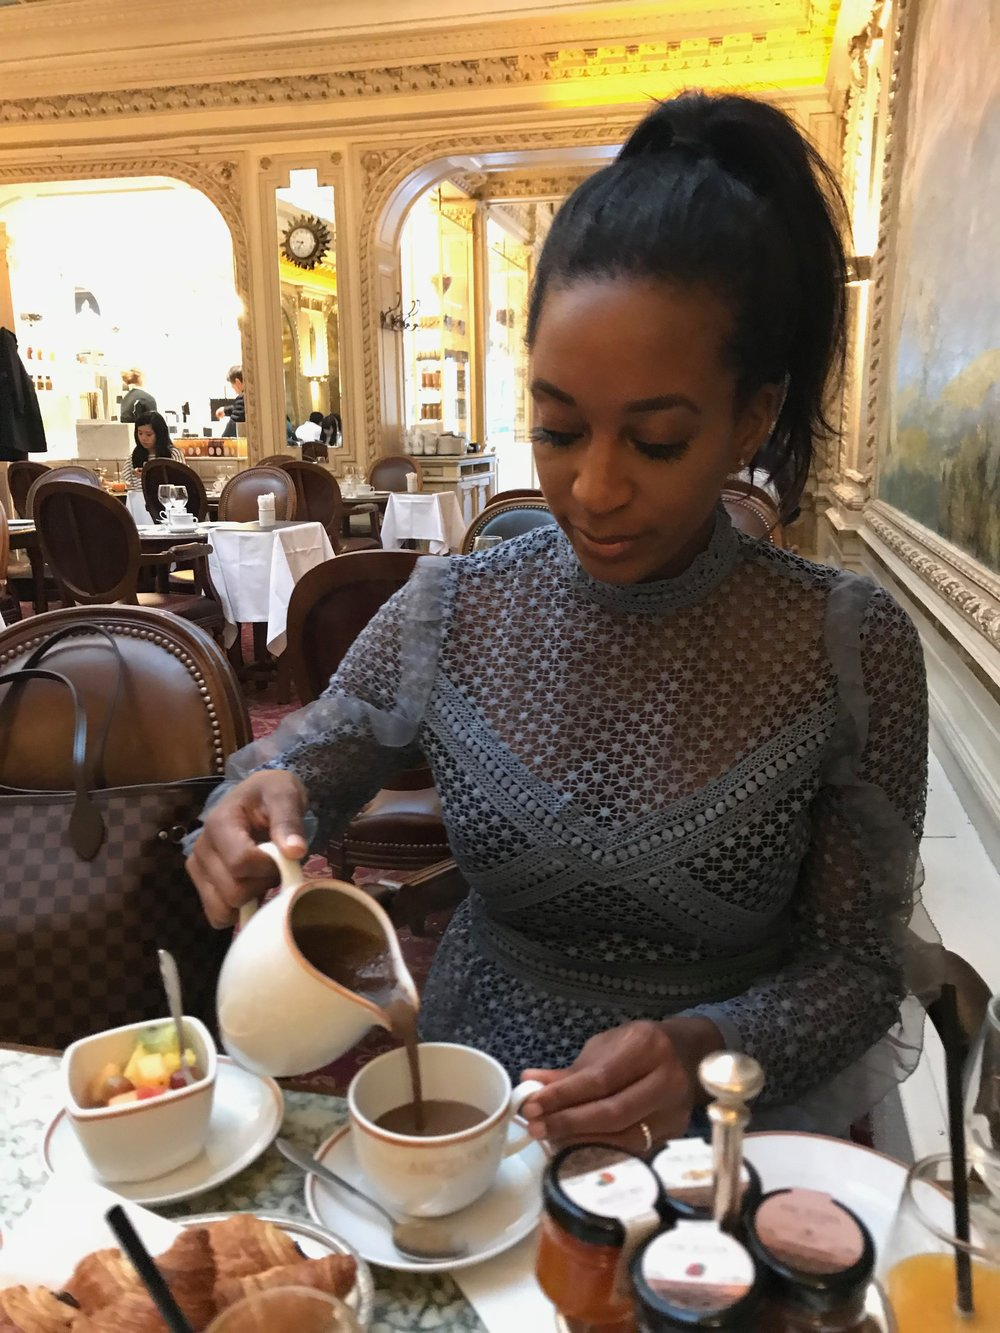 THE FAMED (SUPER-RICH) HOT CHOCOLATE